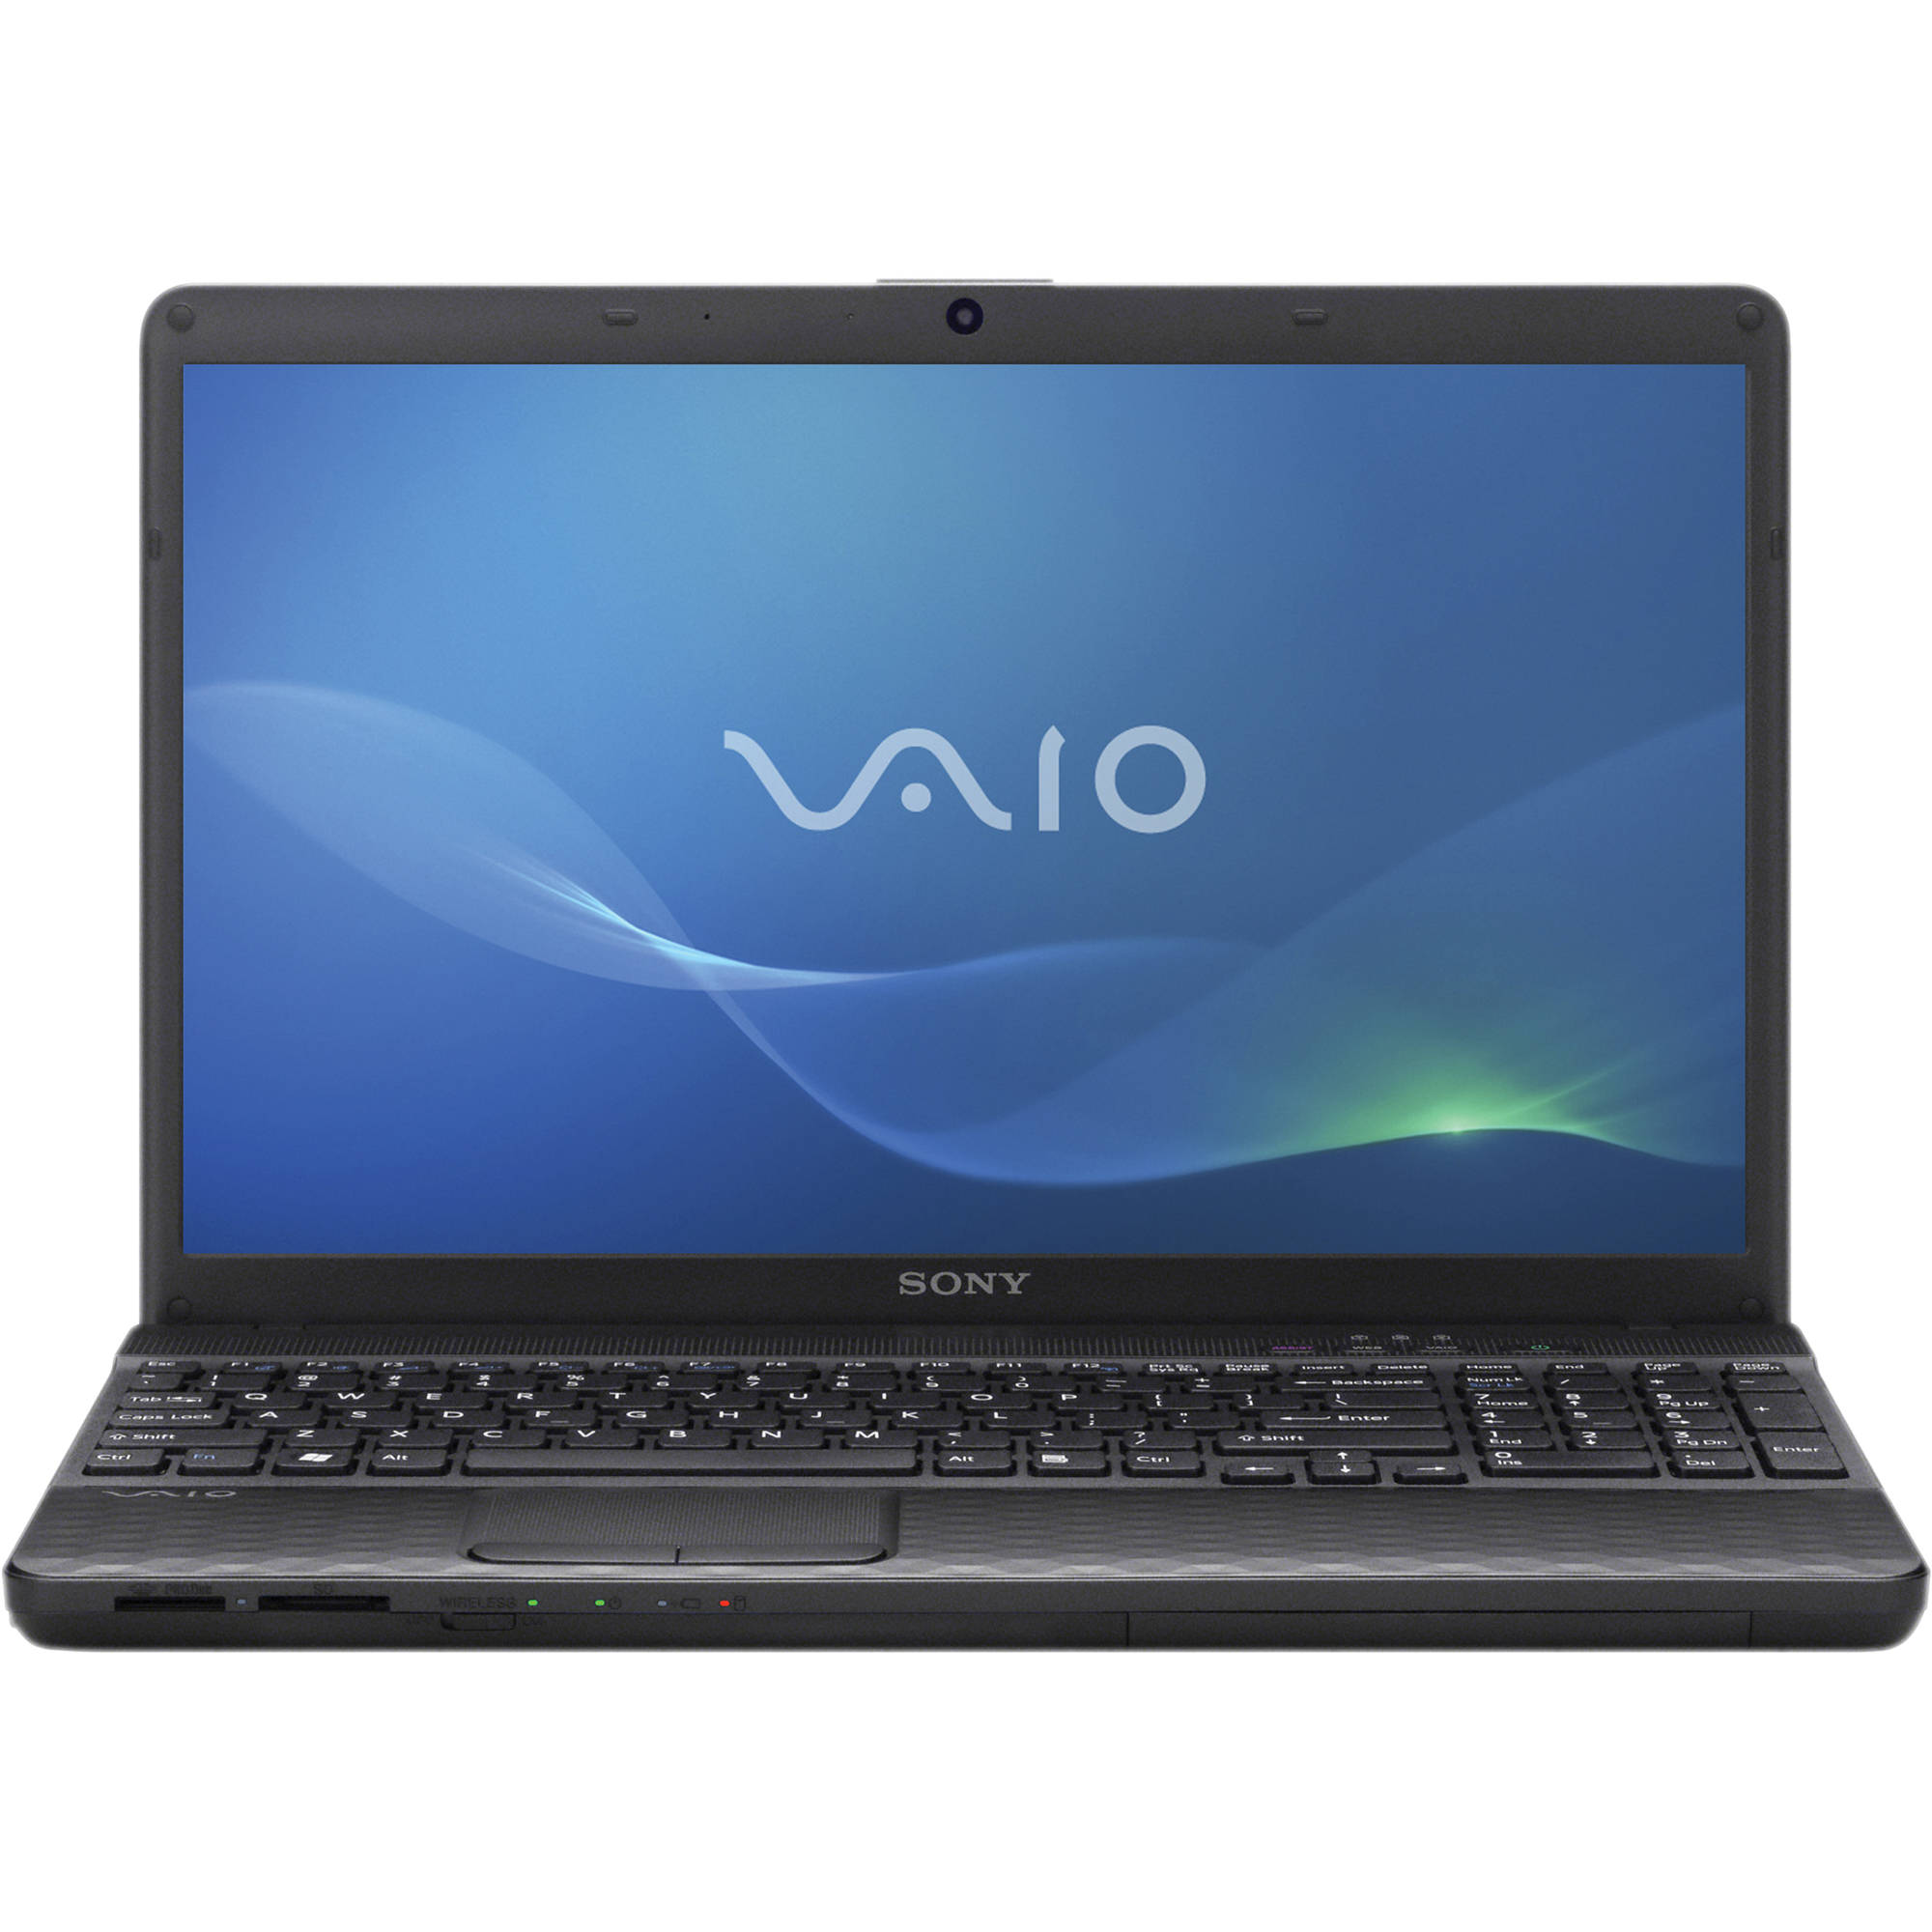 SONY VAIO VPCEG14FXB EASY CONNECT DRIVERS FOR WINDOWS 8